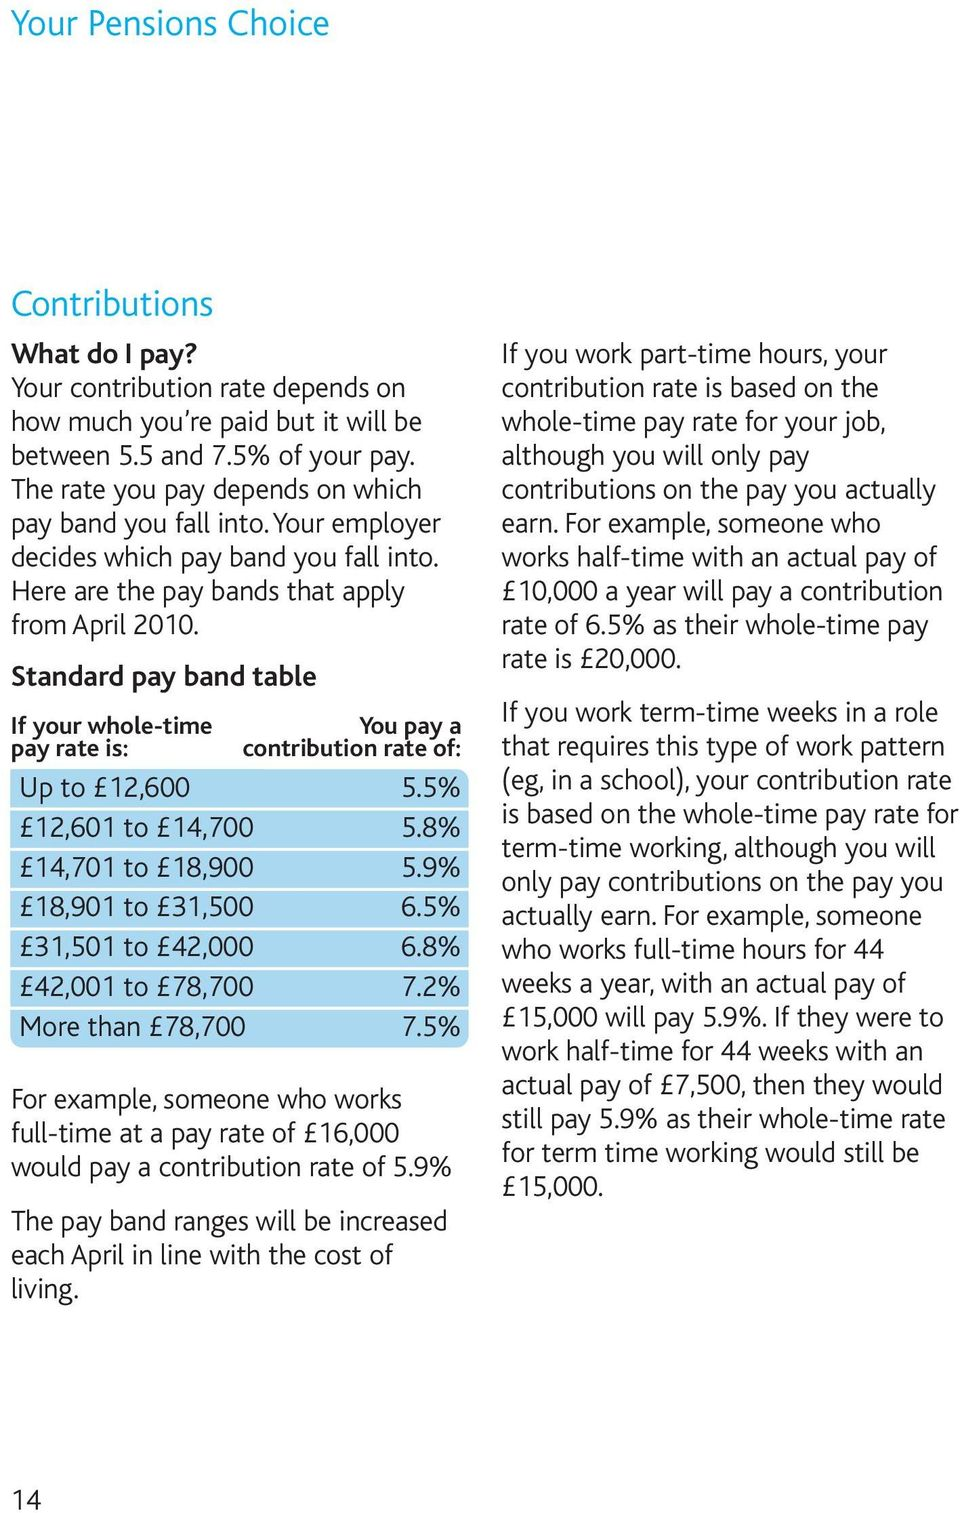 Standard pay band table If your whole-time pay rate is: You pay a contribution rate of: Up to 12,600 5.5% 12,601 to 14,700 5.8% 14,701 to 18,900 5.9% 18,901 to 31,500 6.5% 31,501 to 42,000 6.